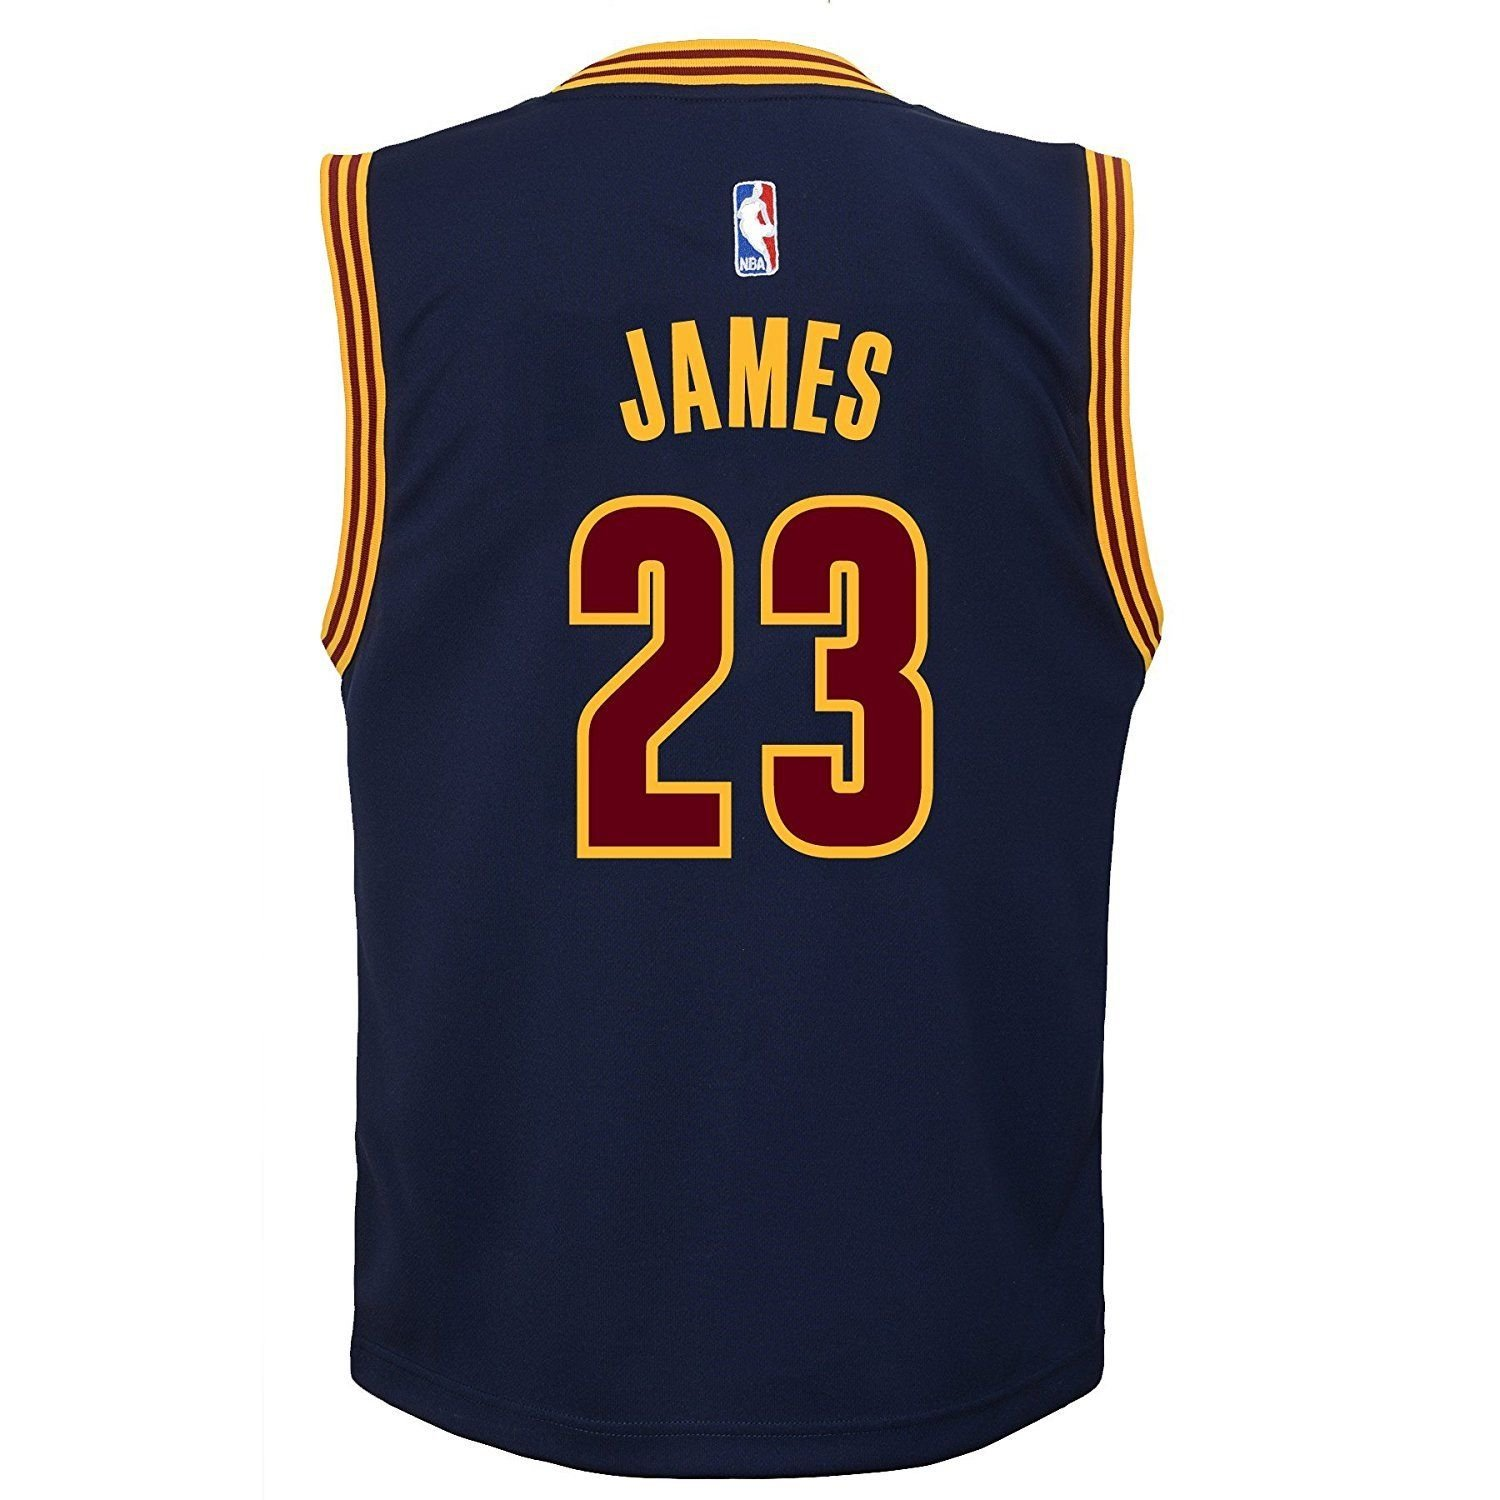 21e178fee Amazon.com   Outerstuff Lebron James Cleveland Cavaliers  23 Youth  Alternate Jersey Navy (Youth Medium 10 12)   Sports   Outdoors